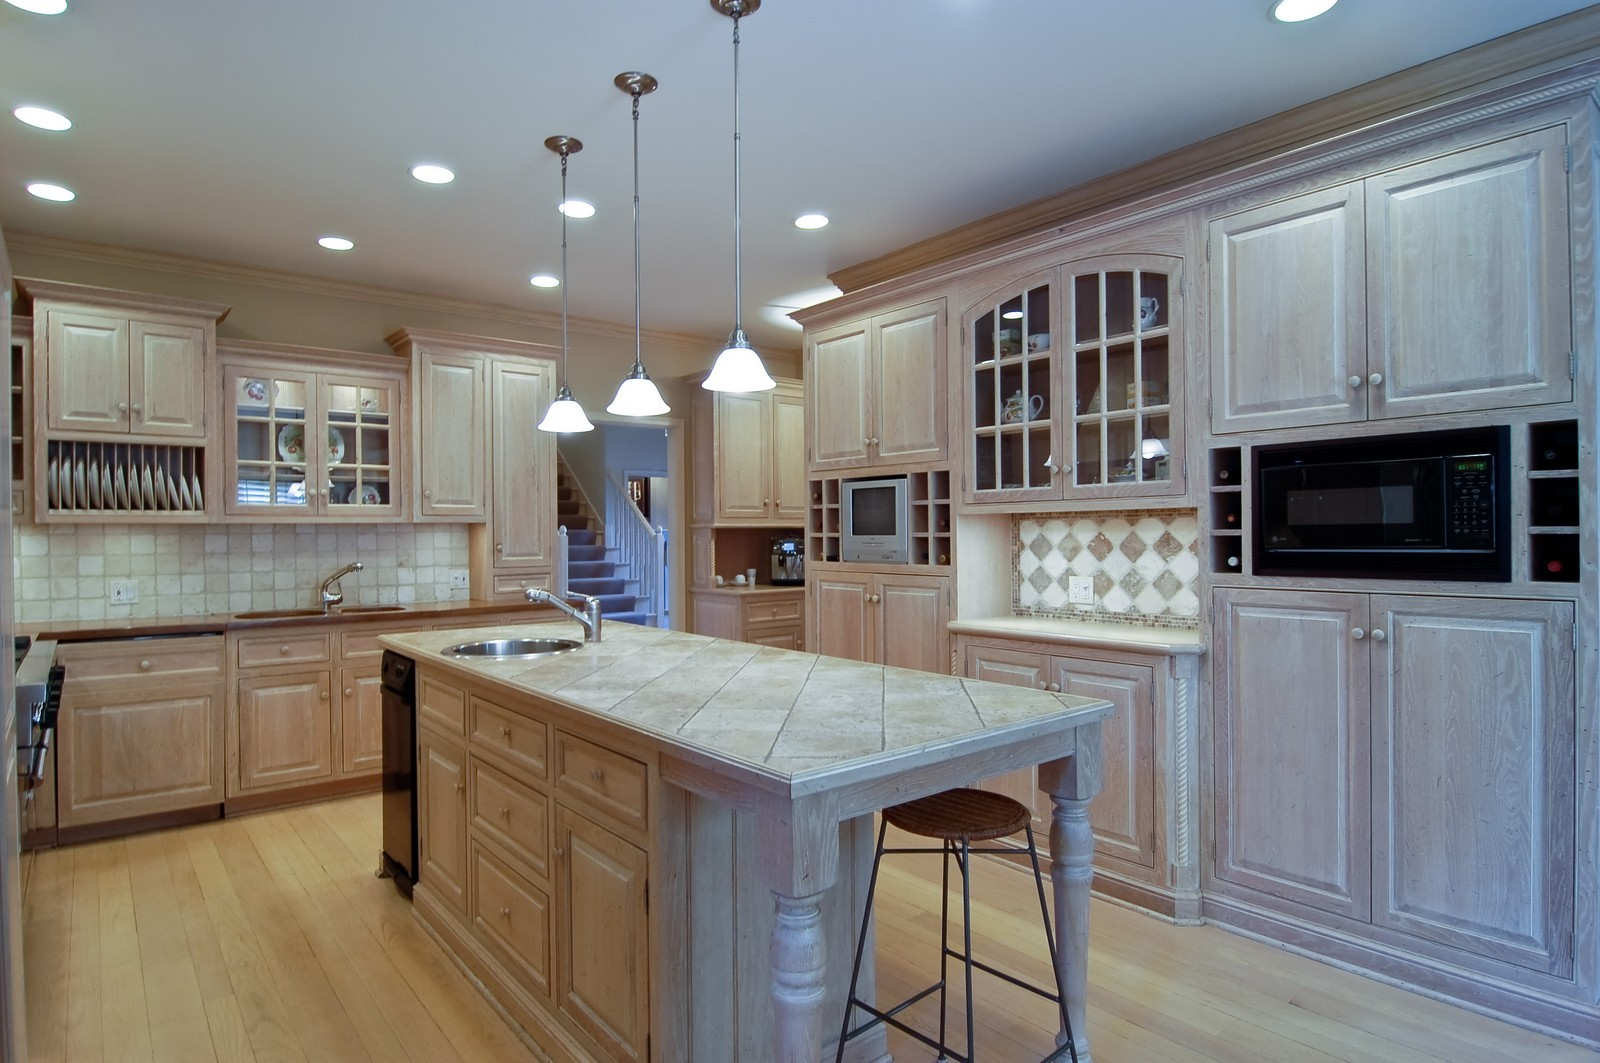 Real Estate Photography - 656 E 6th St, Hinsdale, IL, 60521 - Kitchen / Breakfast Room